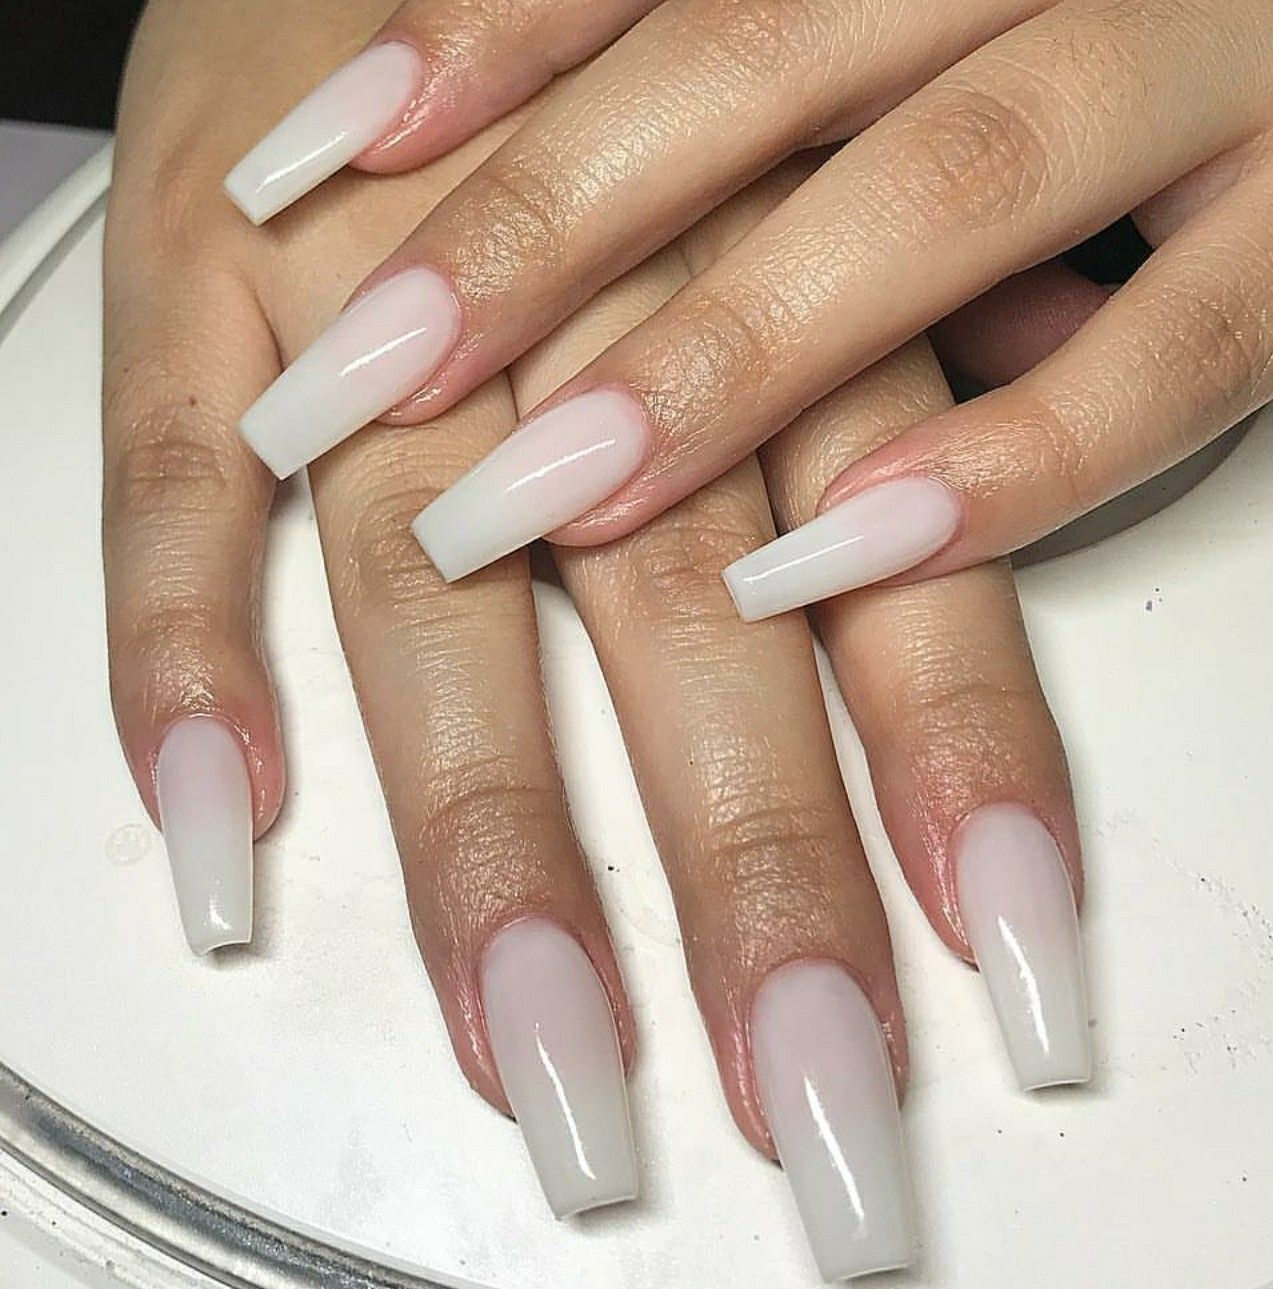 Pin By Cierra King On Nails Square Acrylic Nails Square Nails Tapered Square Nails